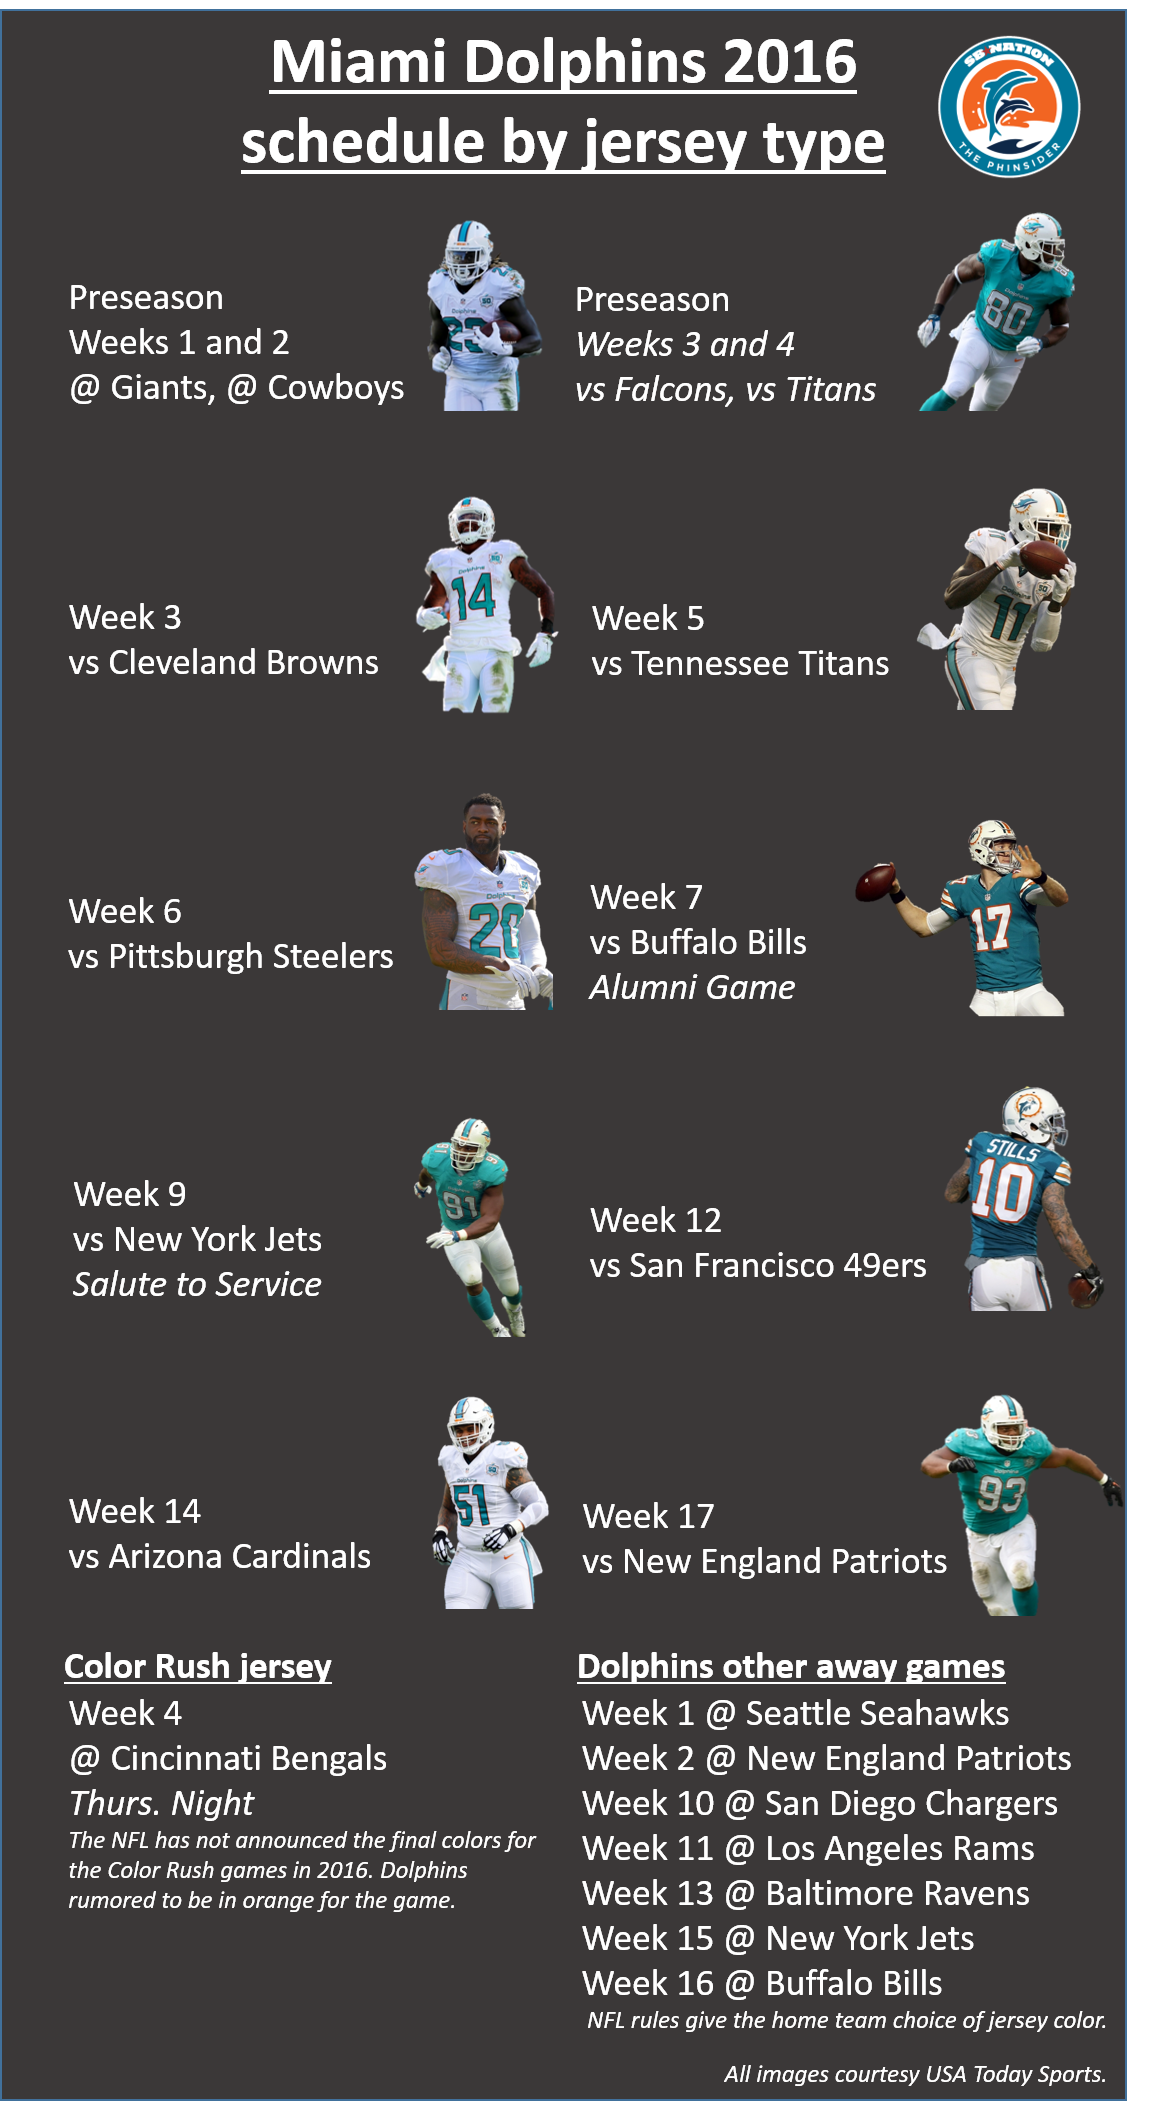 Dolphins uniforms for 2016: White, aqua, and throwback all ... | 1153 x 2105 png 827kB